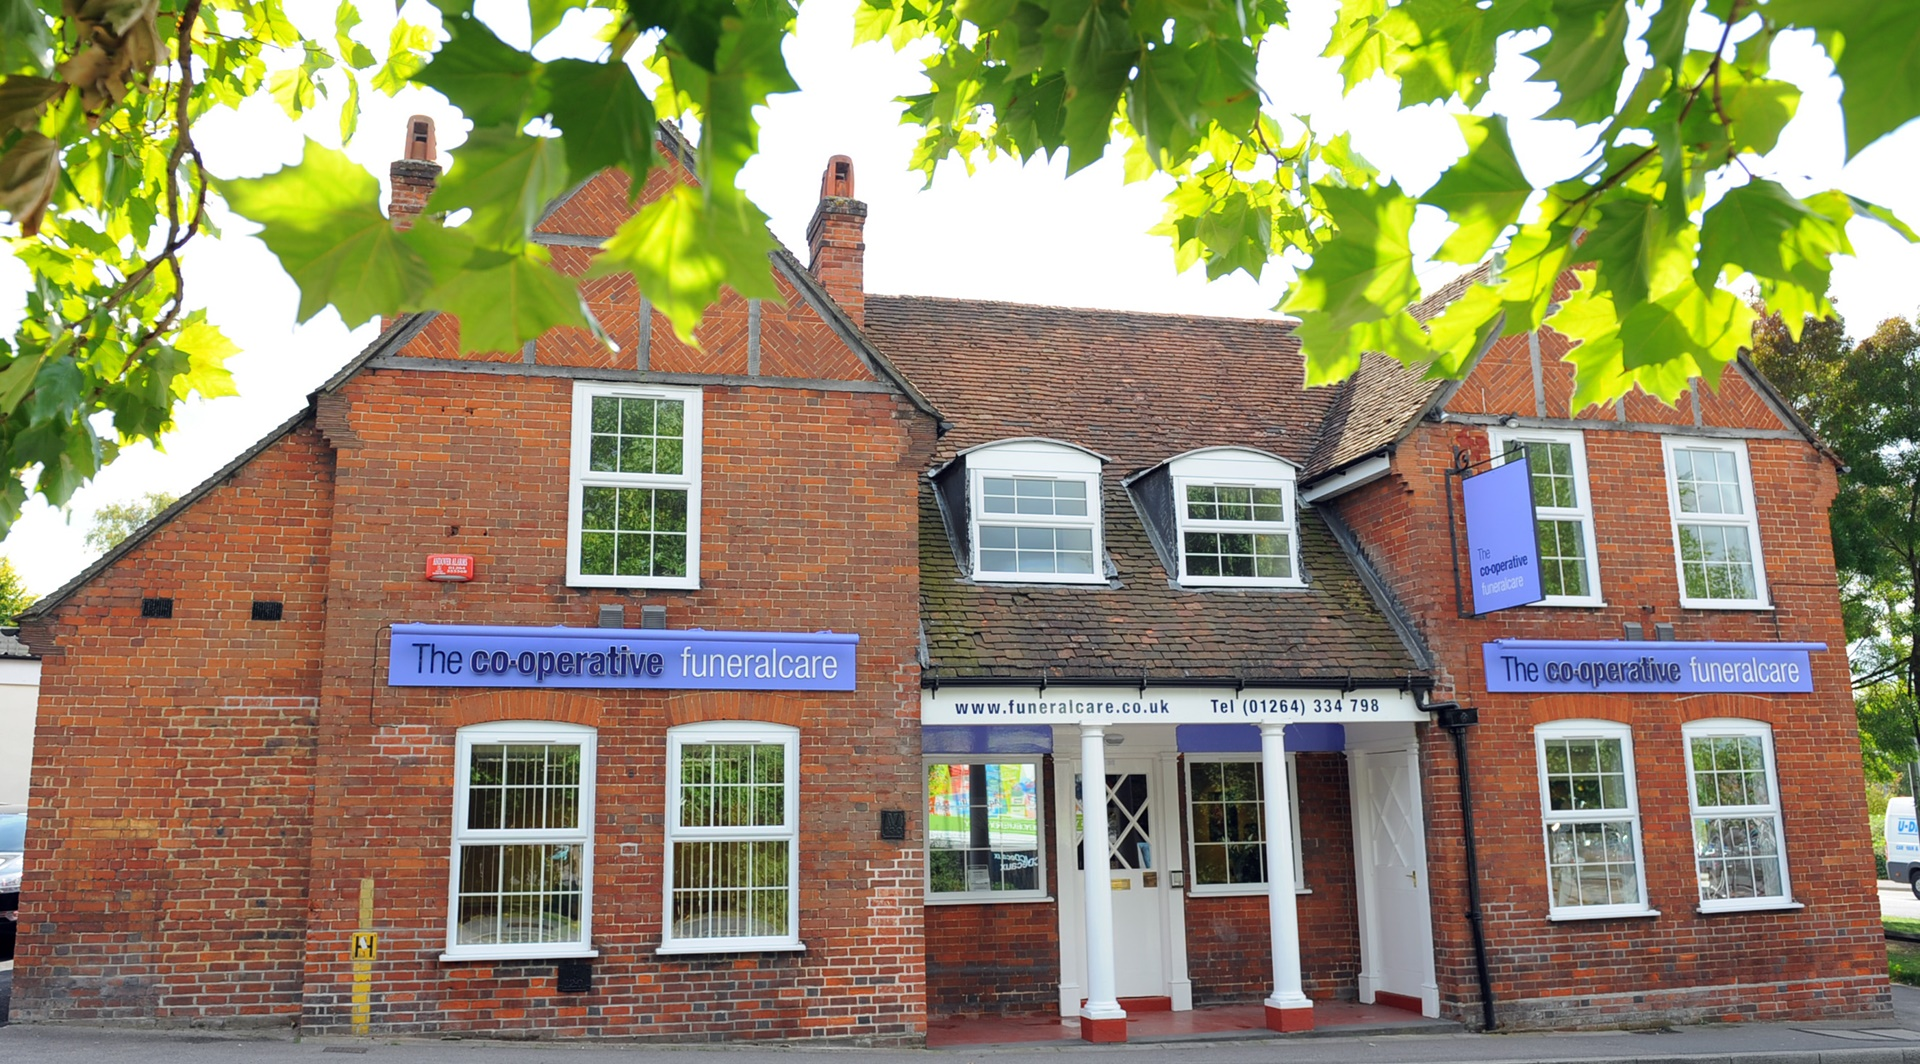 The Co-operative Funeral Care, Andover